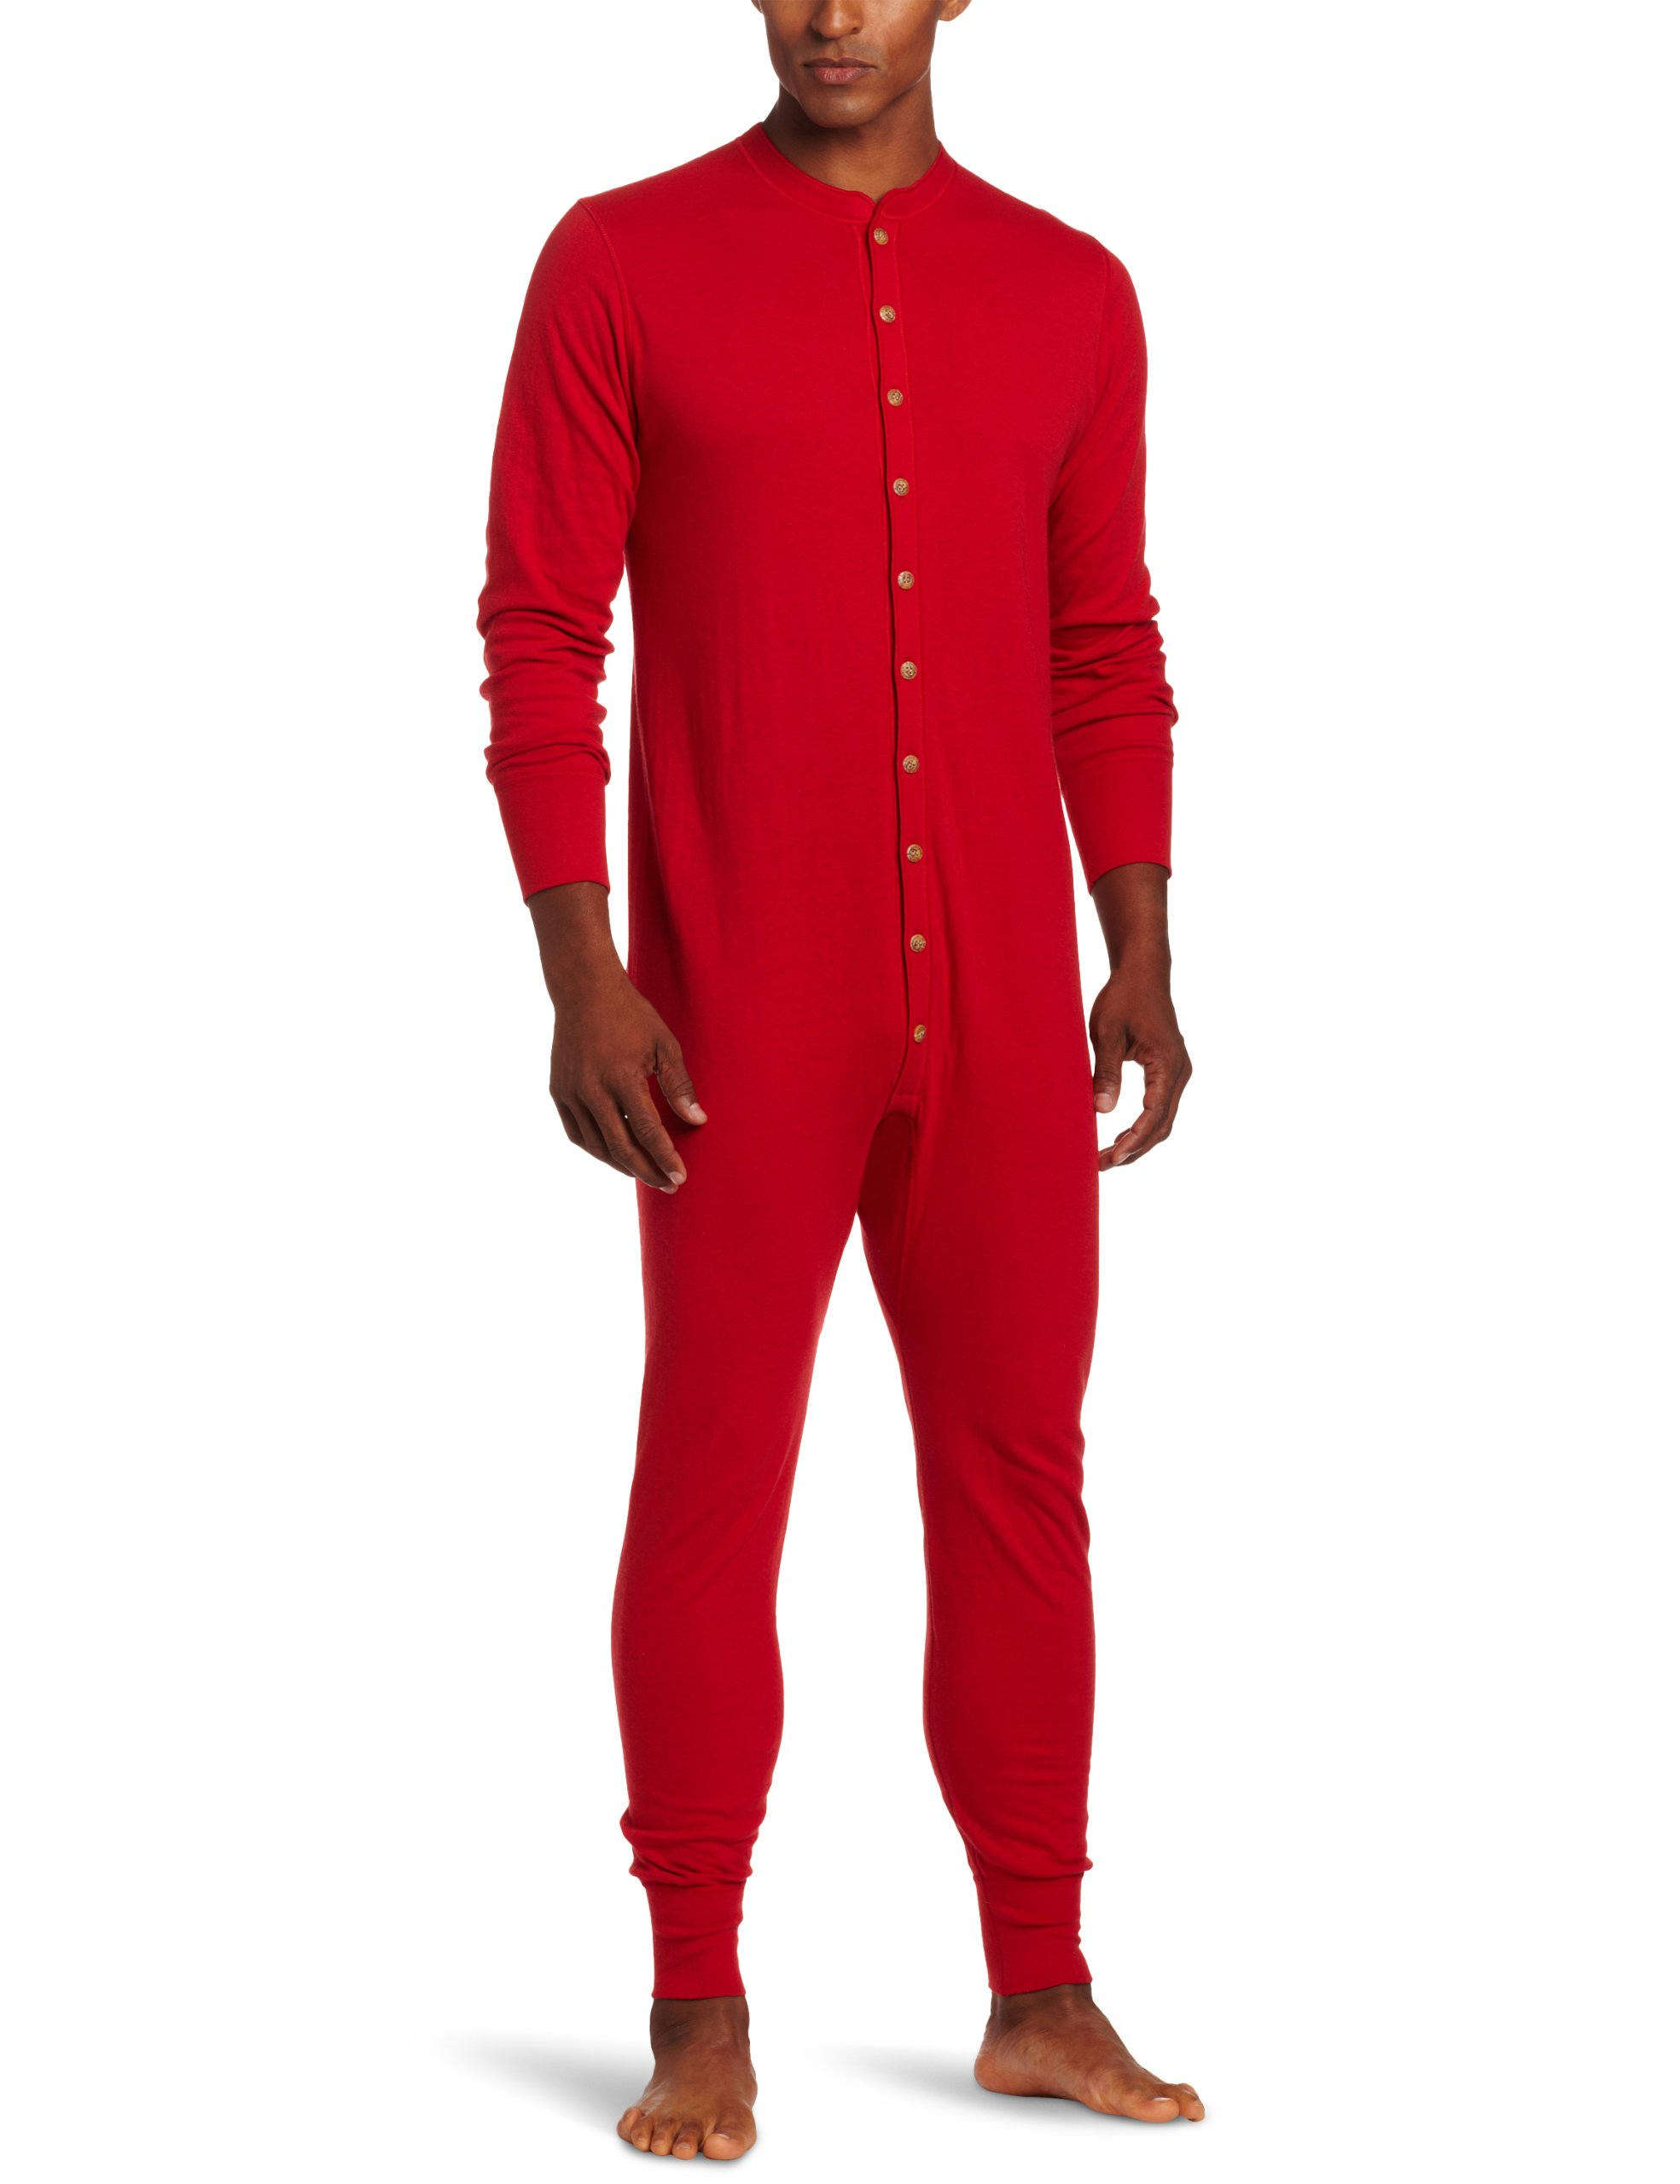 Duofold Men's Mid Weight Double Layer Thermal Union Suit, Red, Large